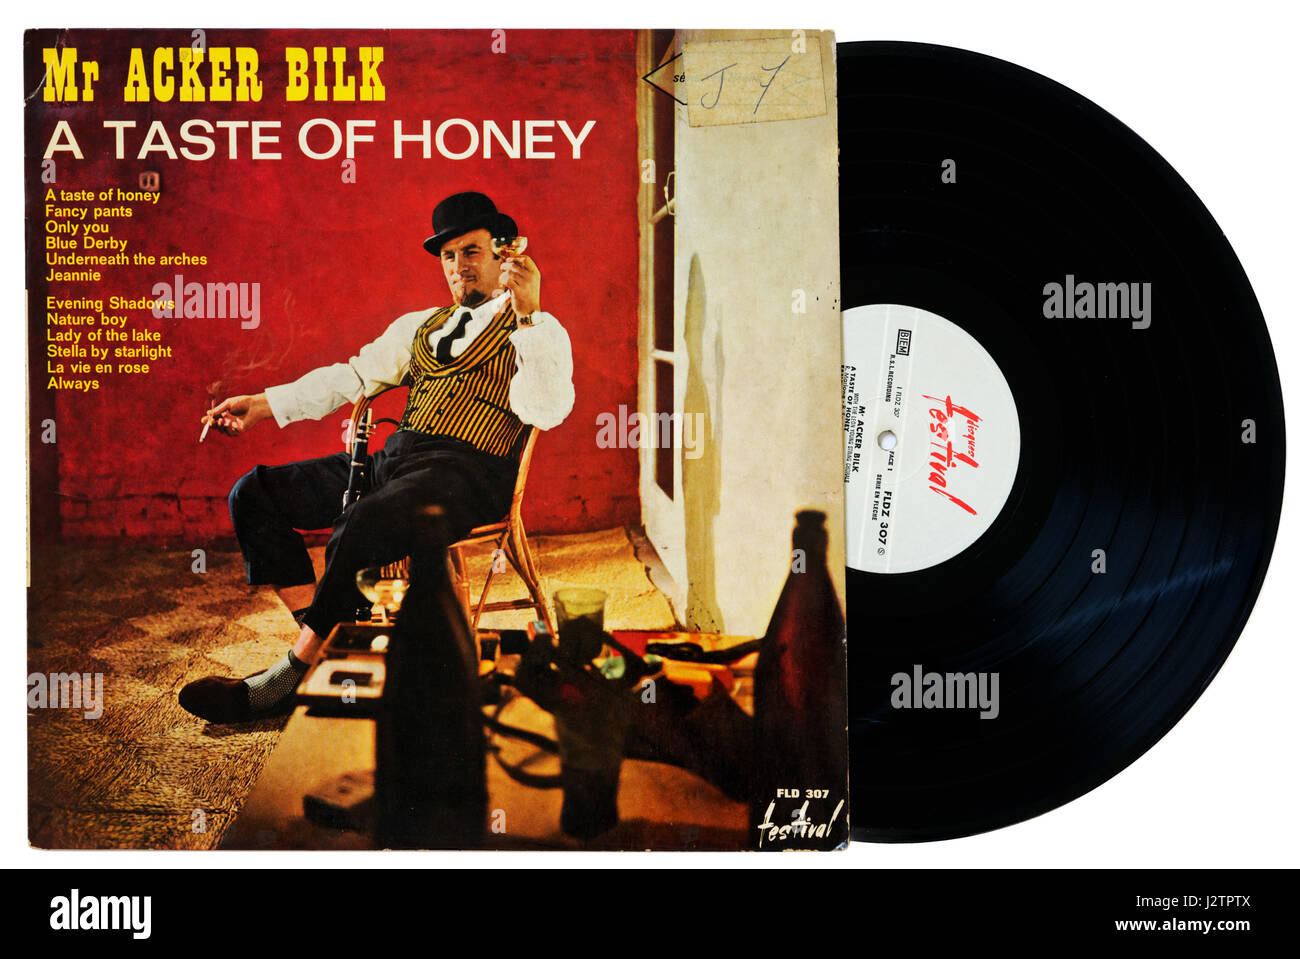 Acker Bilk album A Taste of Honey on vinyl - Stock Image